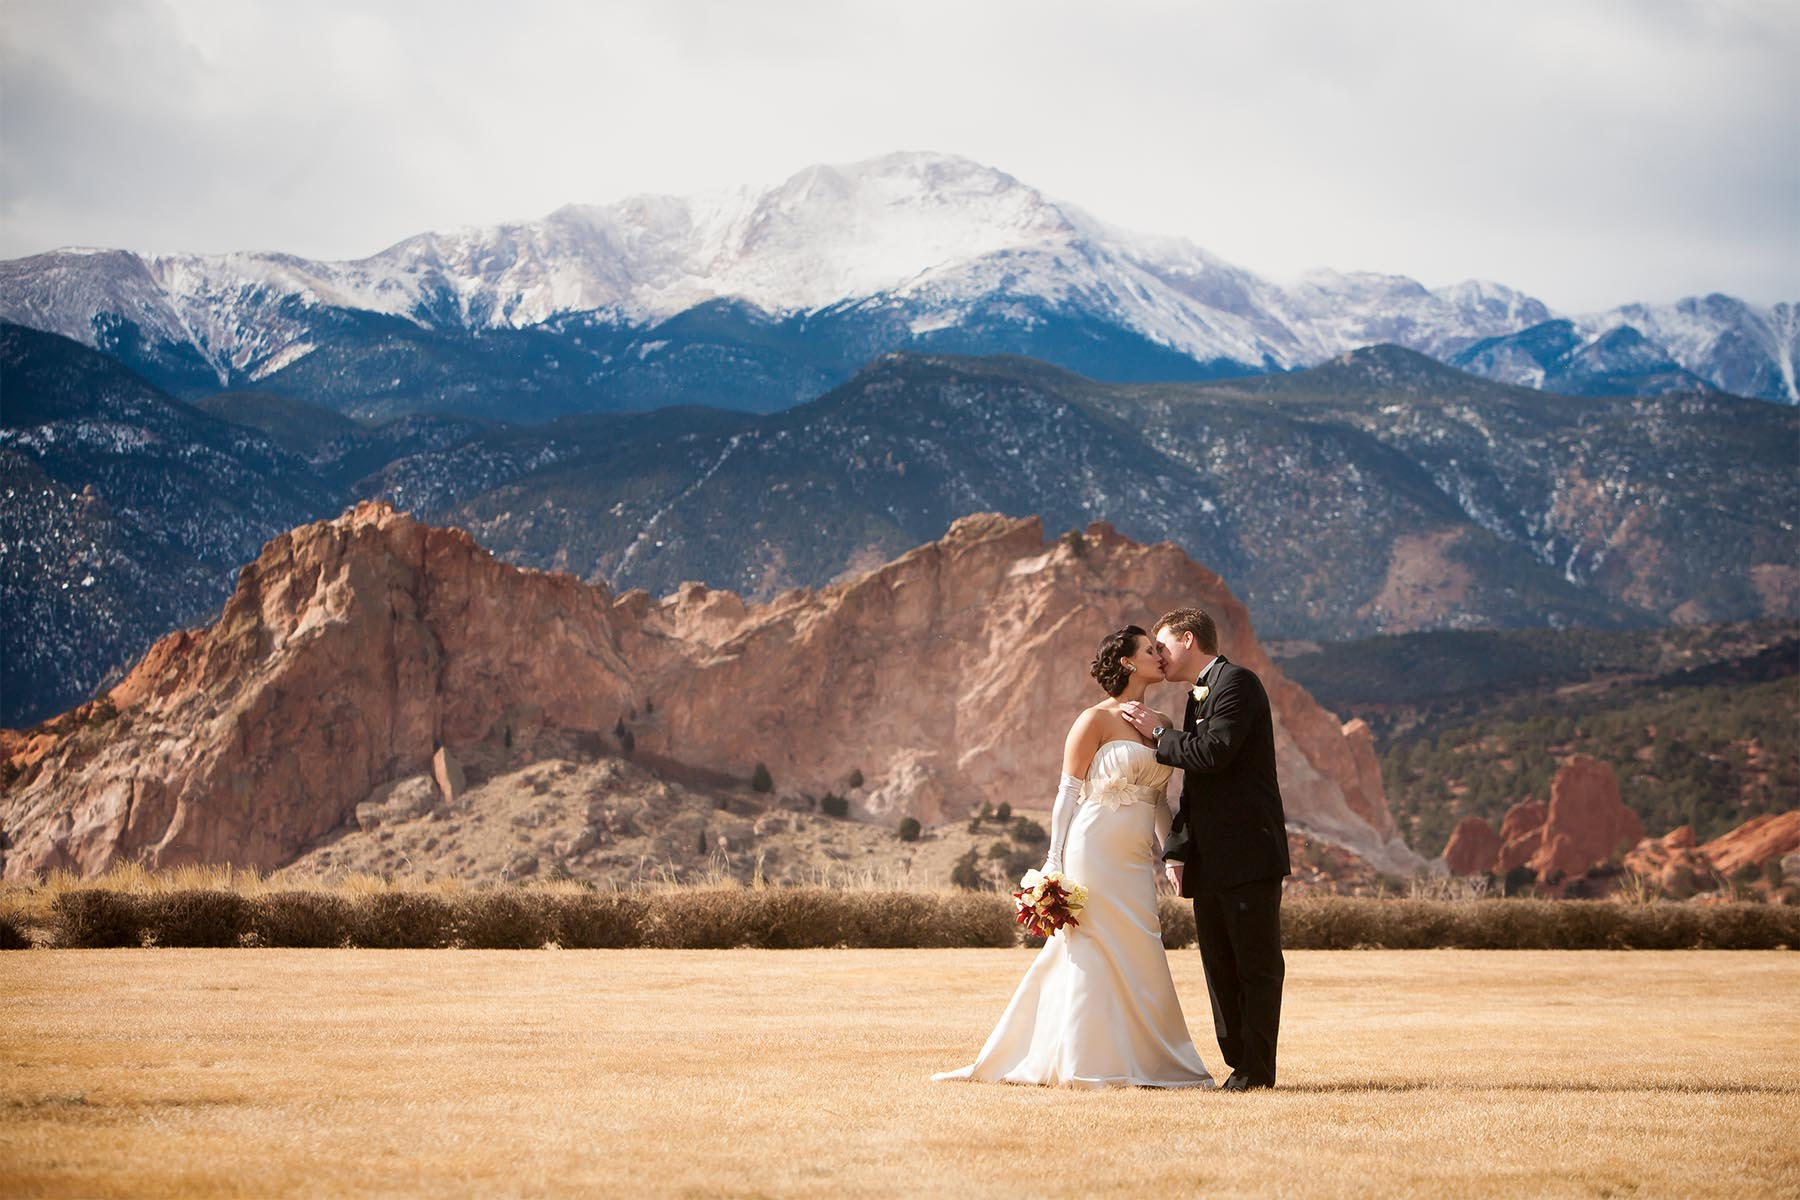 Wedding couple kisses in front of snow capped Pikes Peak.